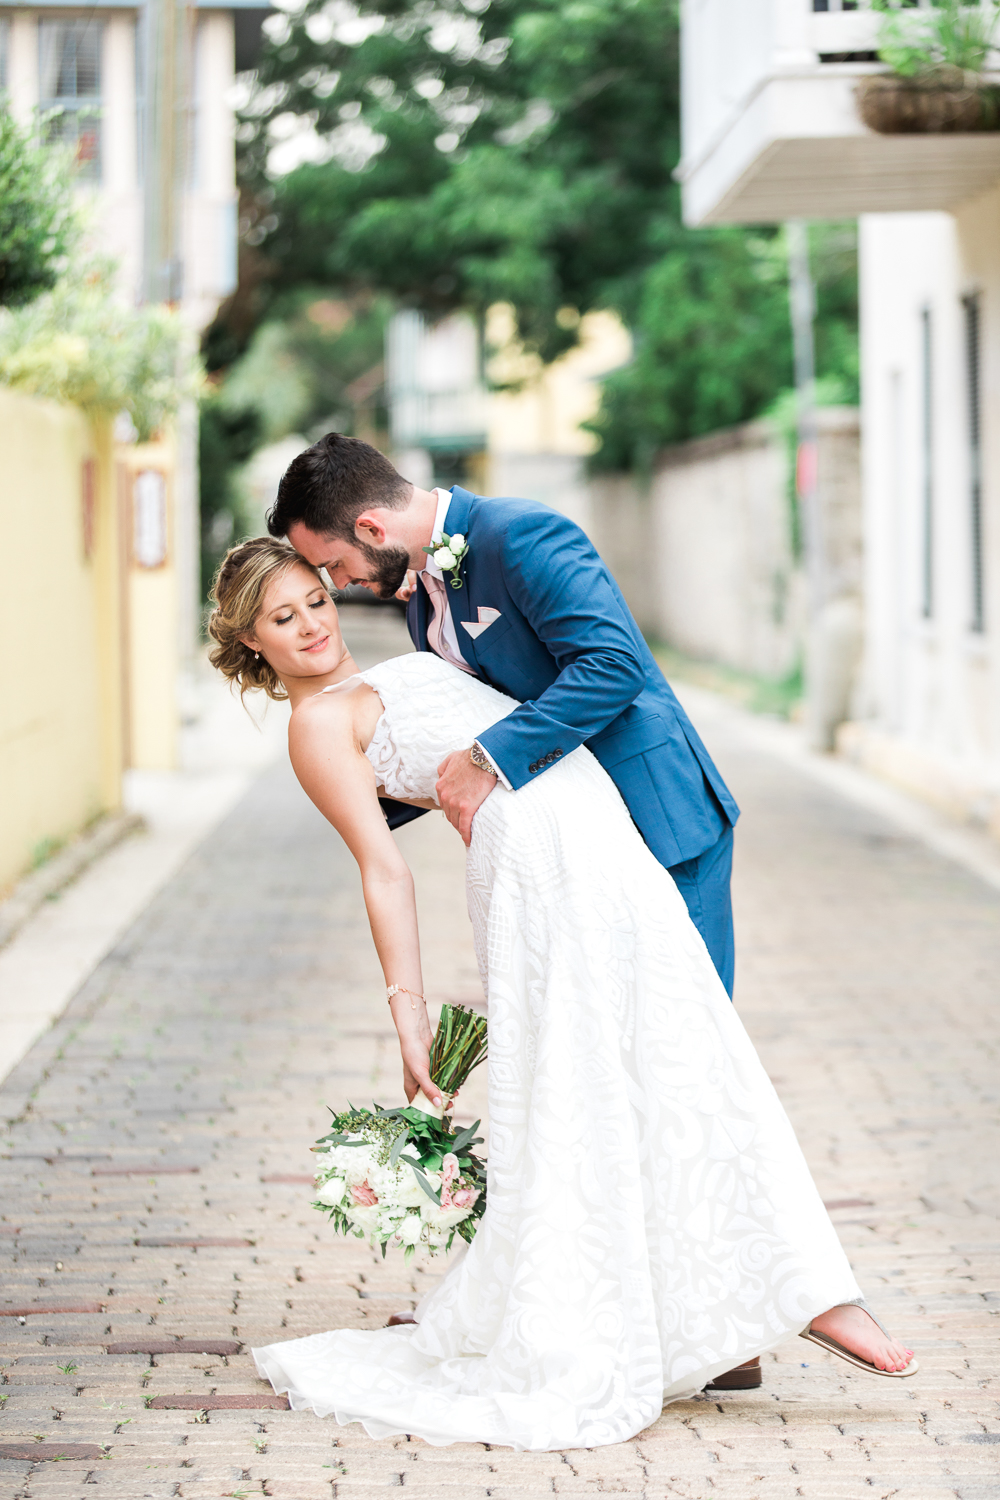 Stunning newlyweds on the streets of St.Augustine, FL